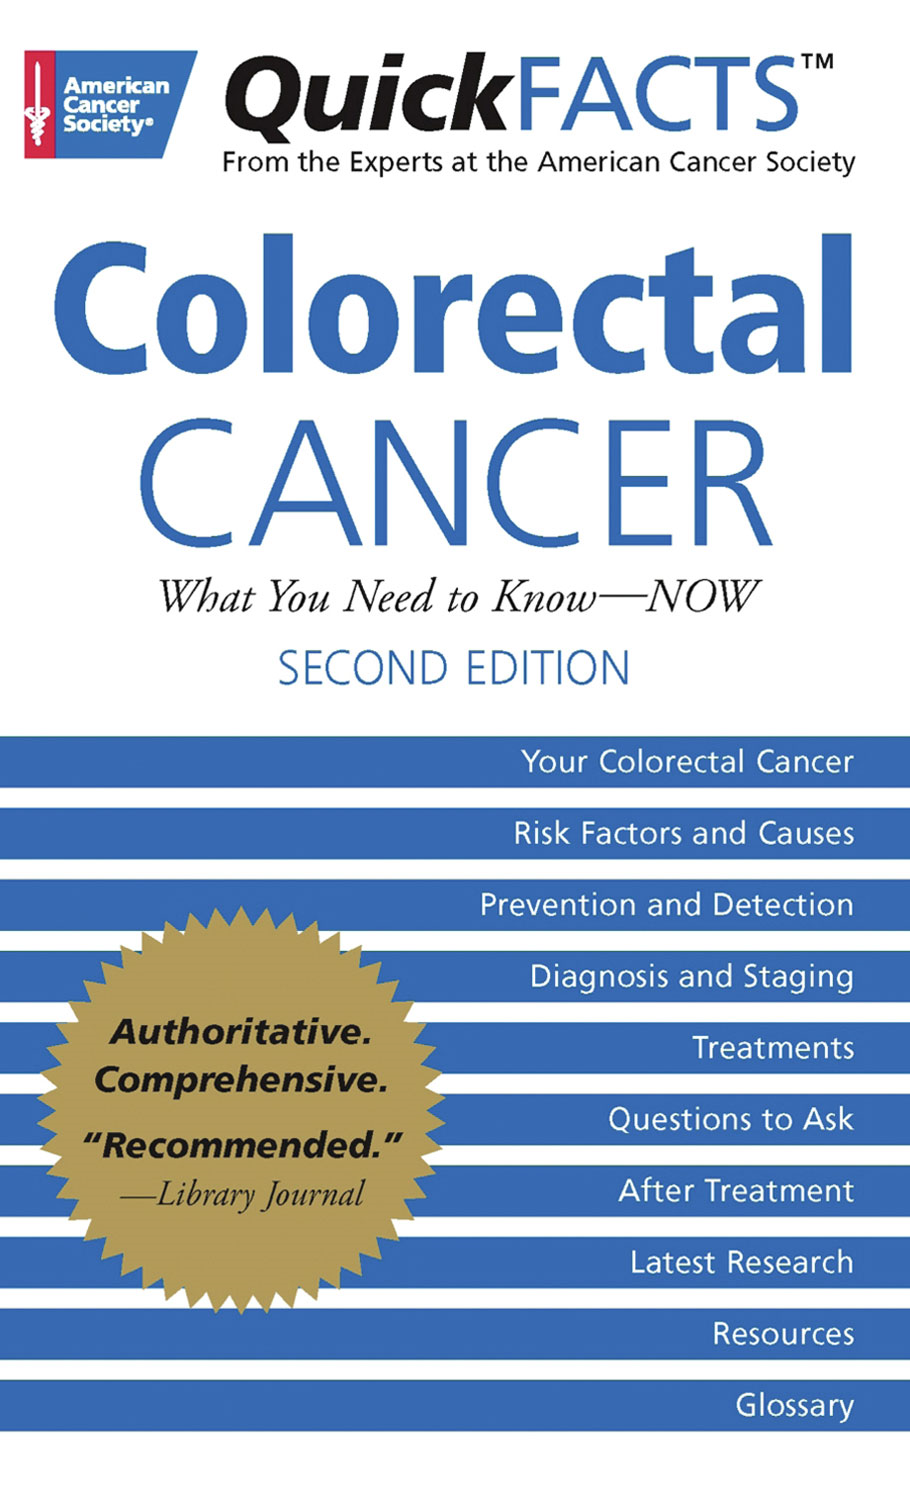 QuickFACTS Colorectal Cancer